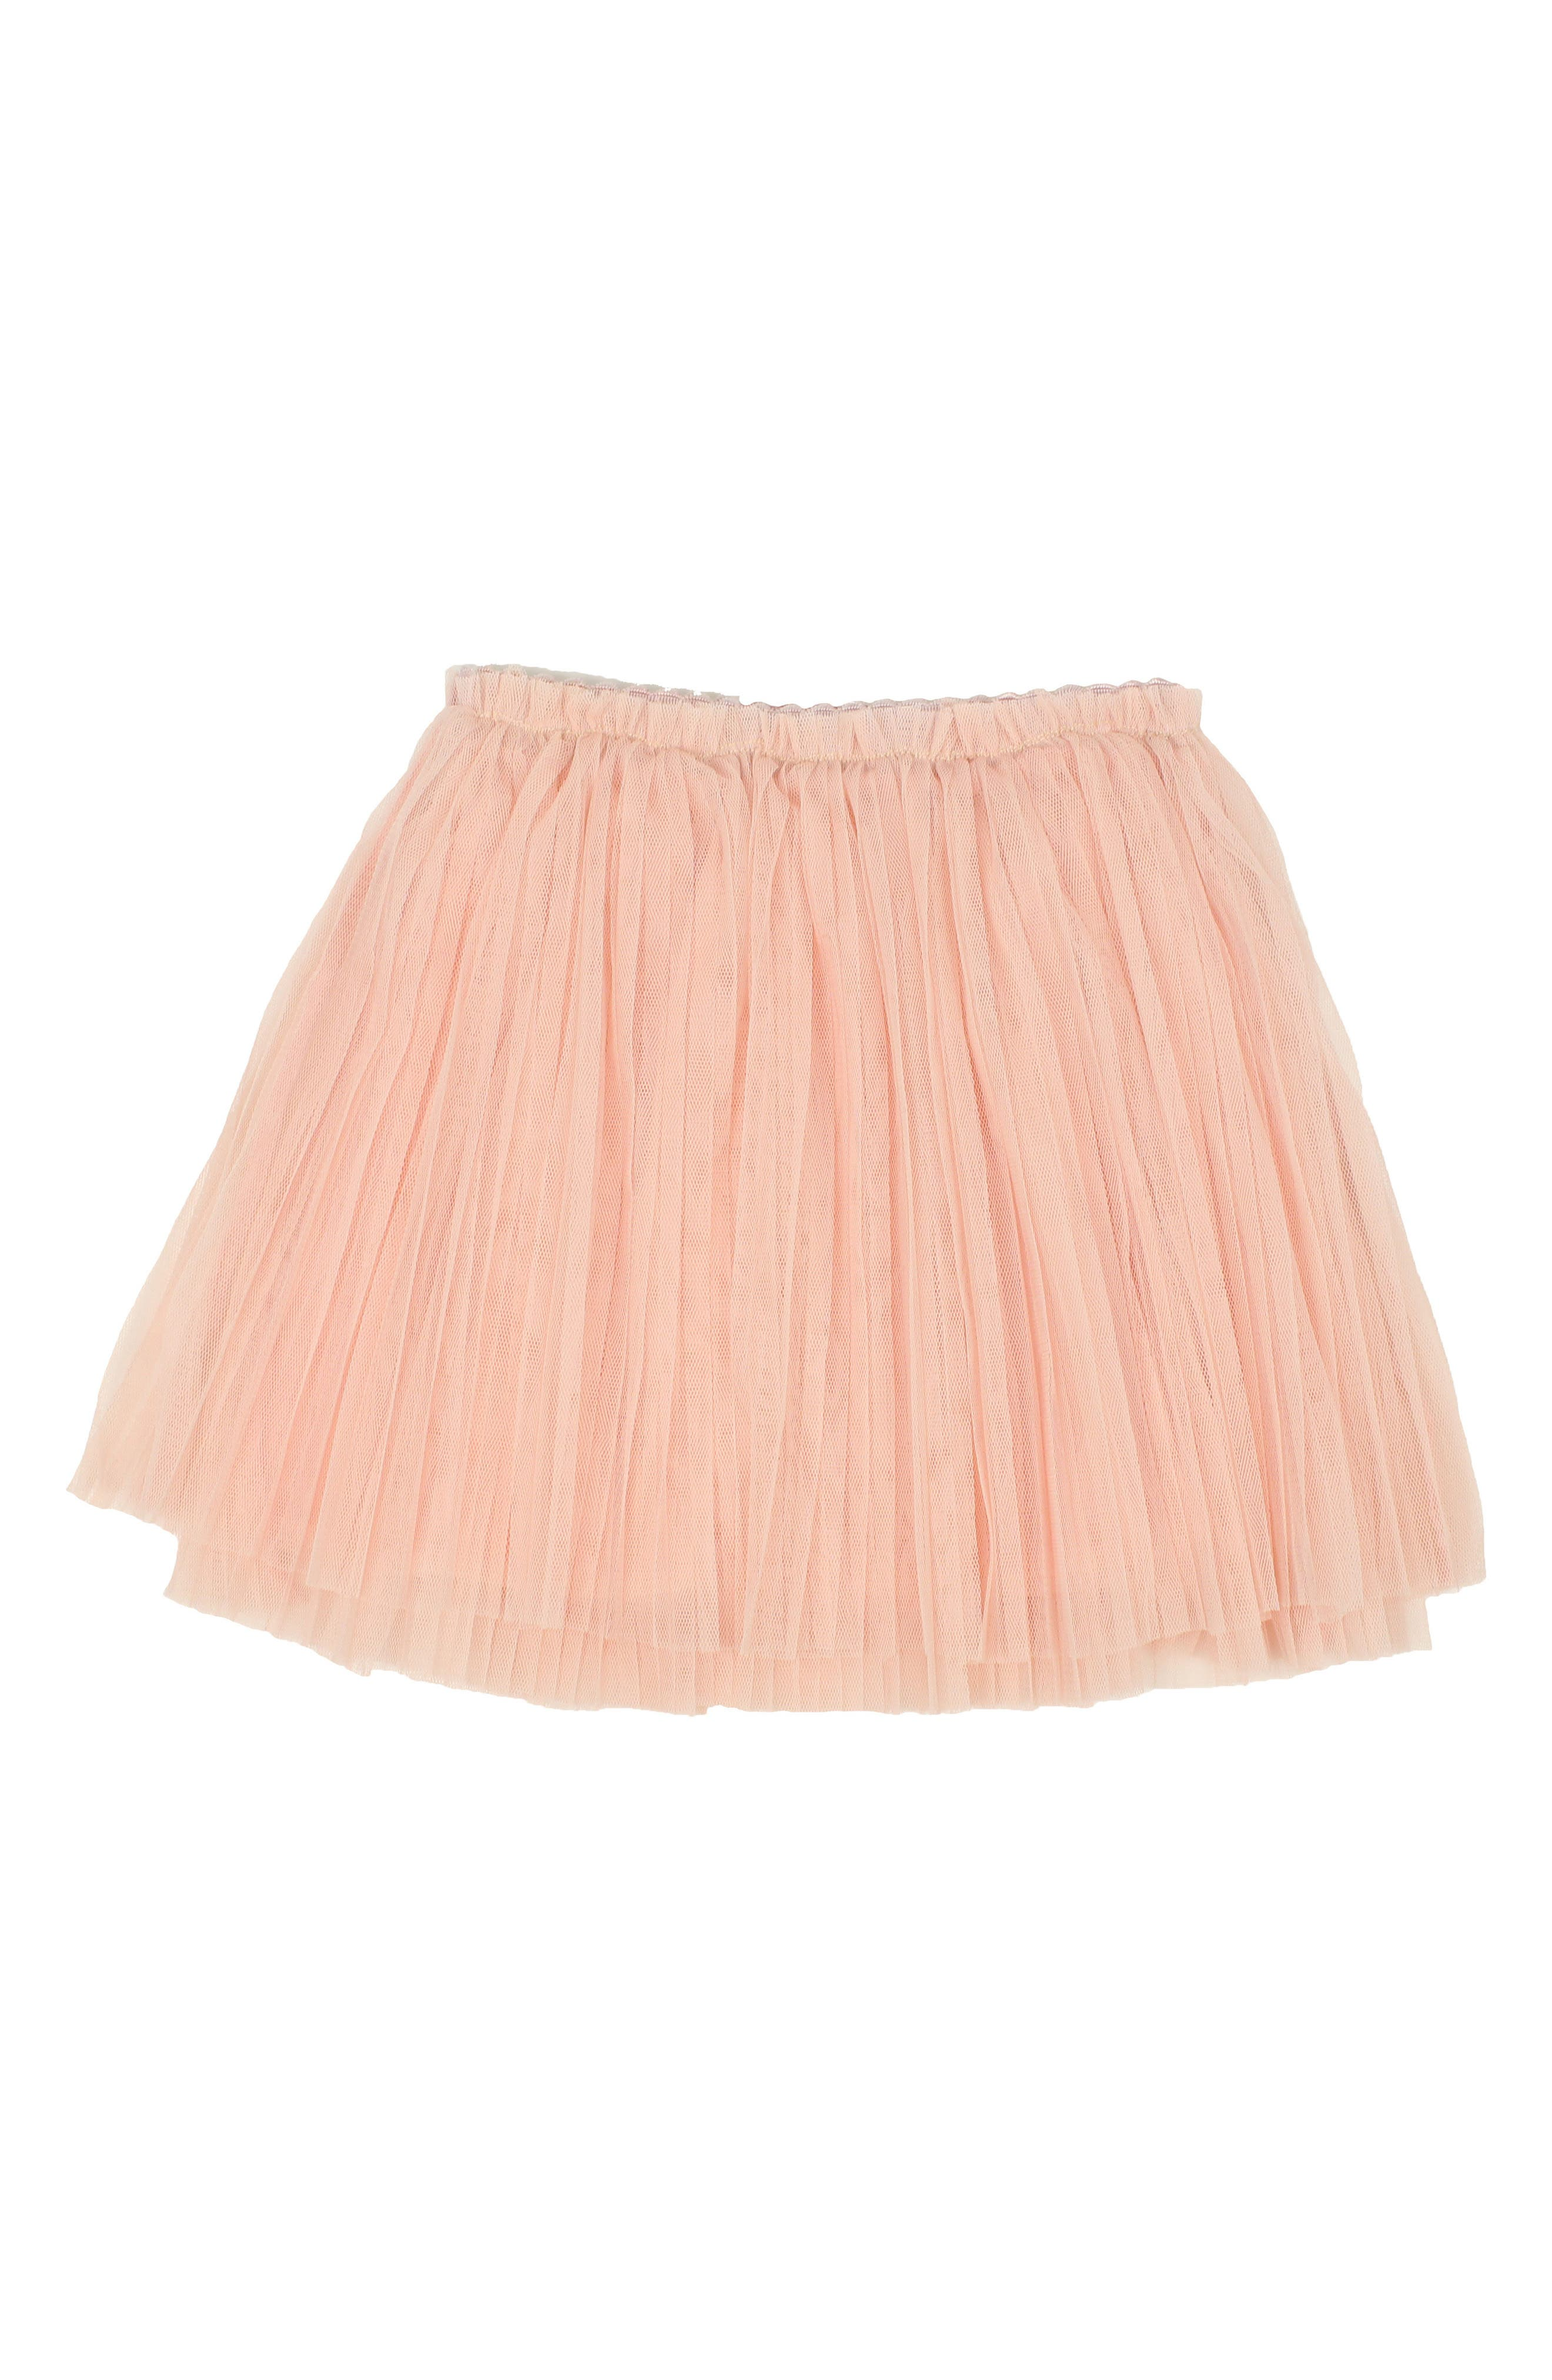 Pleated Tulle Skirt,                         Main,                         color, PEACH